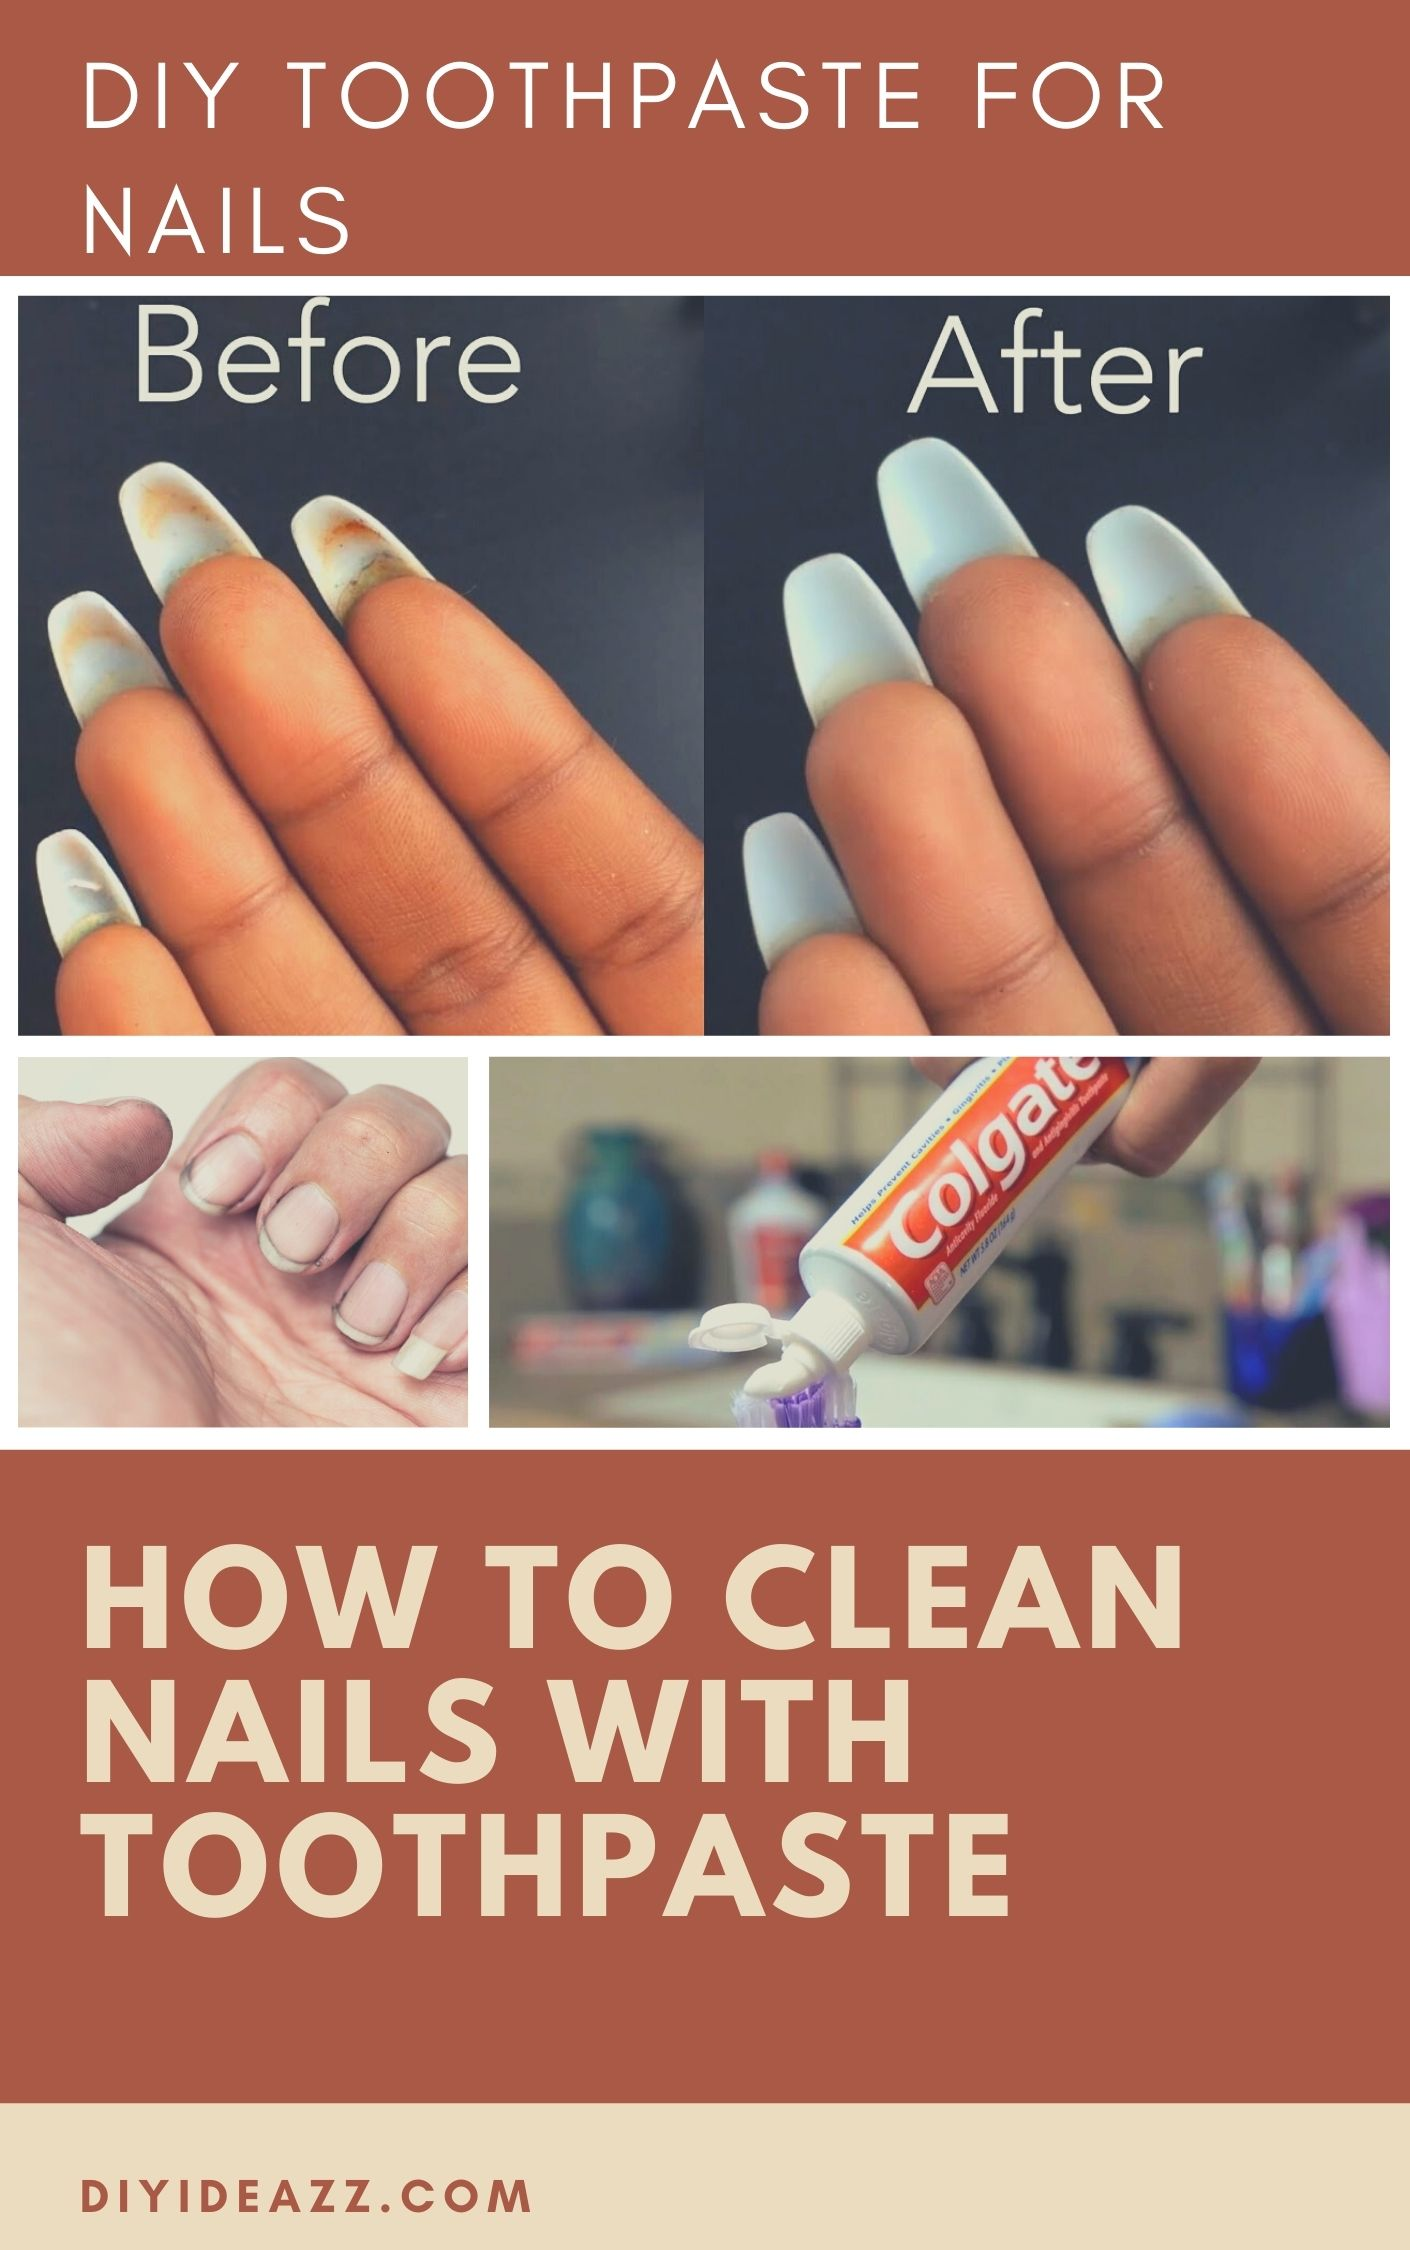 How To Clean Nails With Toothpaste   DIY Toothpaste for nails